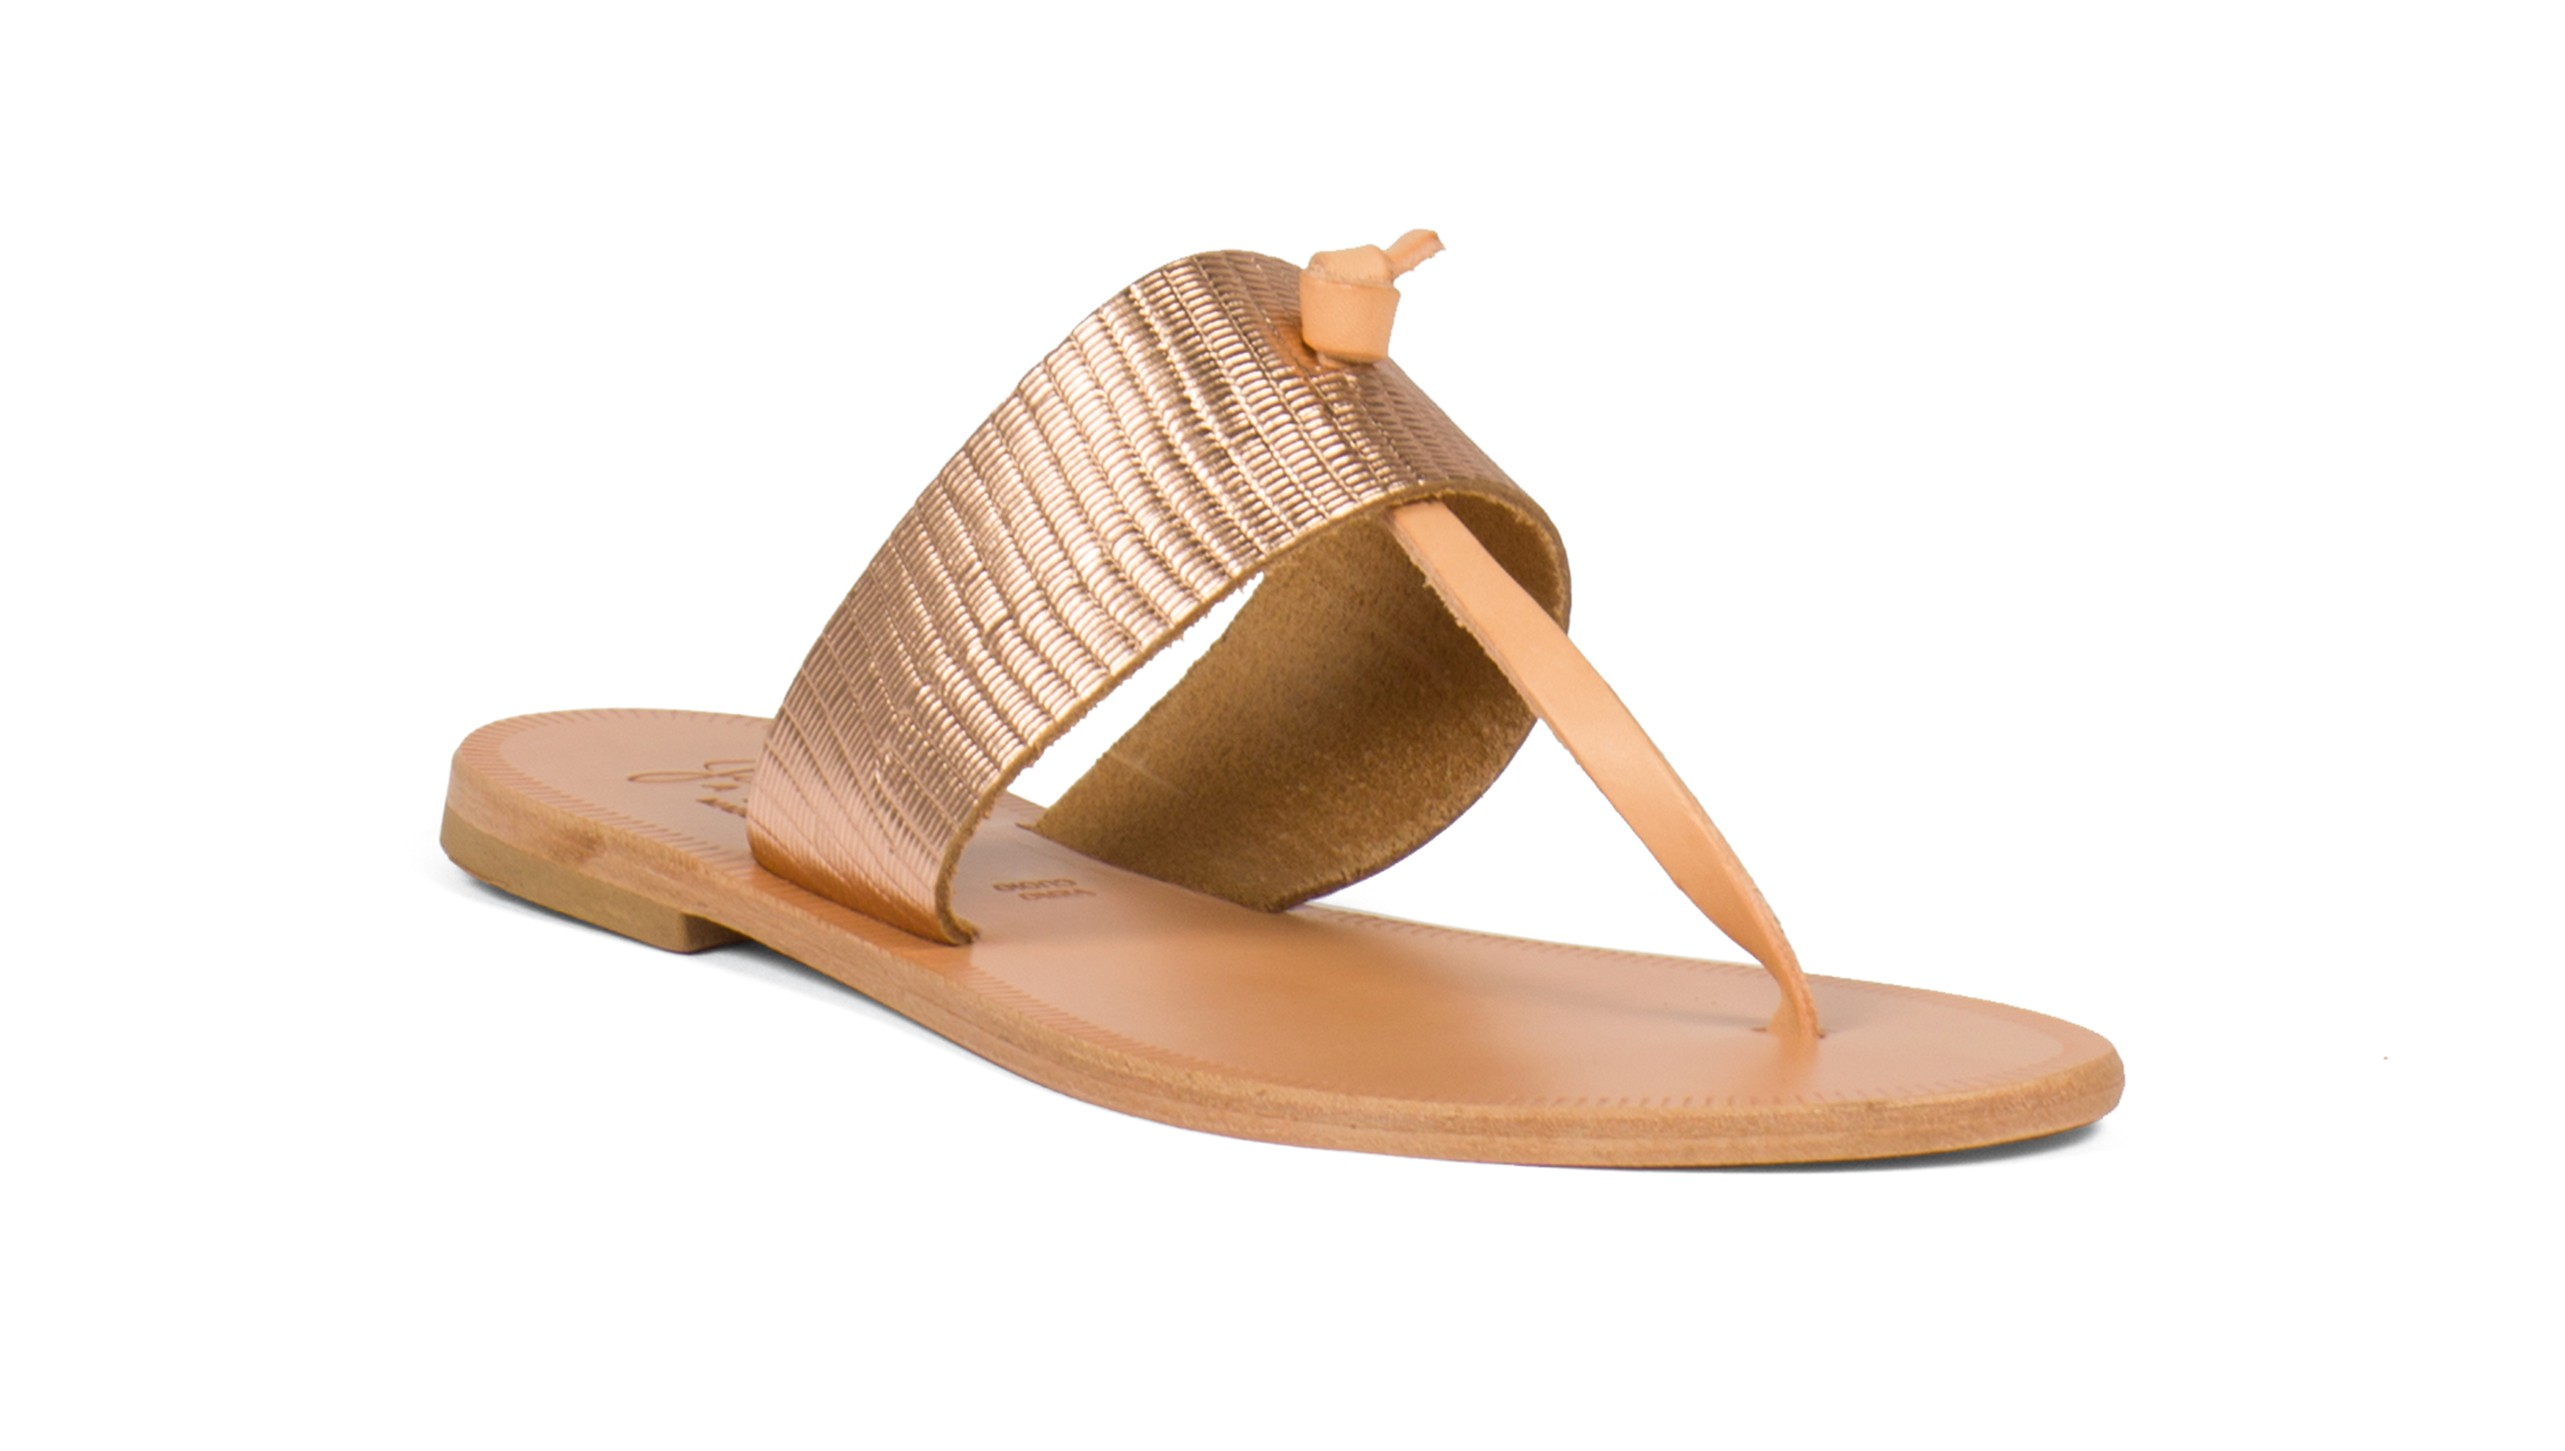 Joie Nice Sandal In Natural Lyst